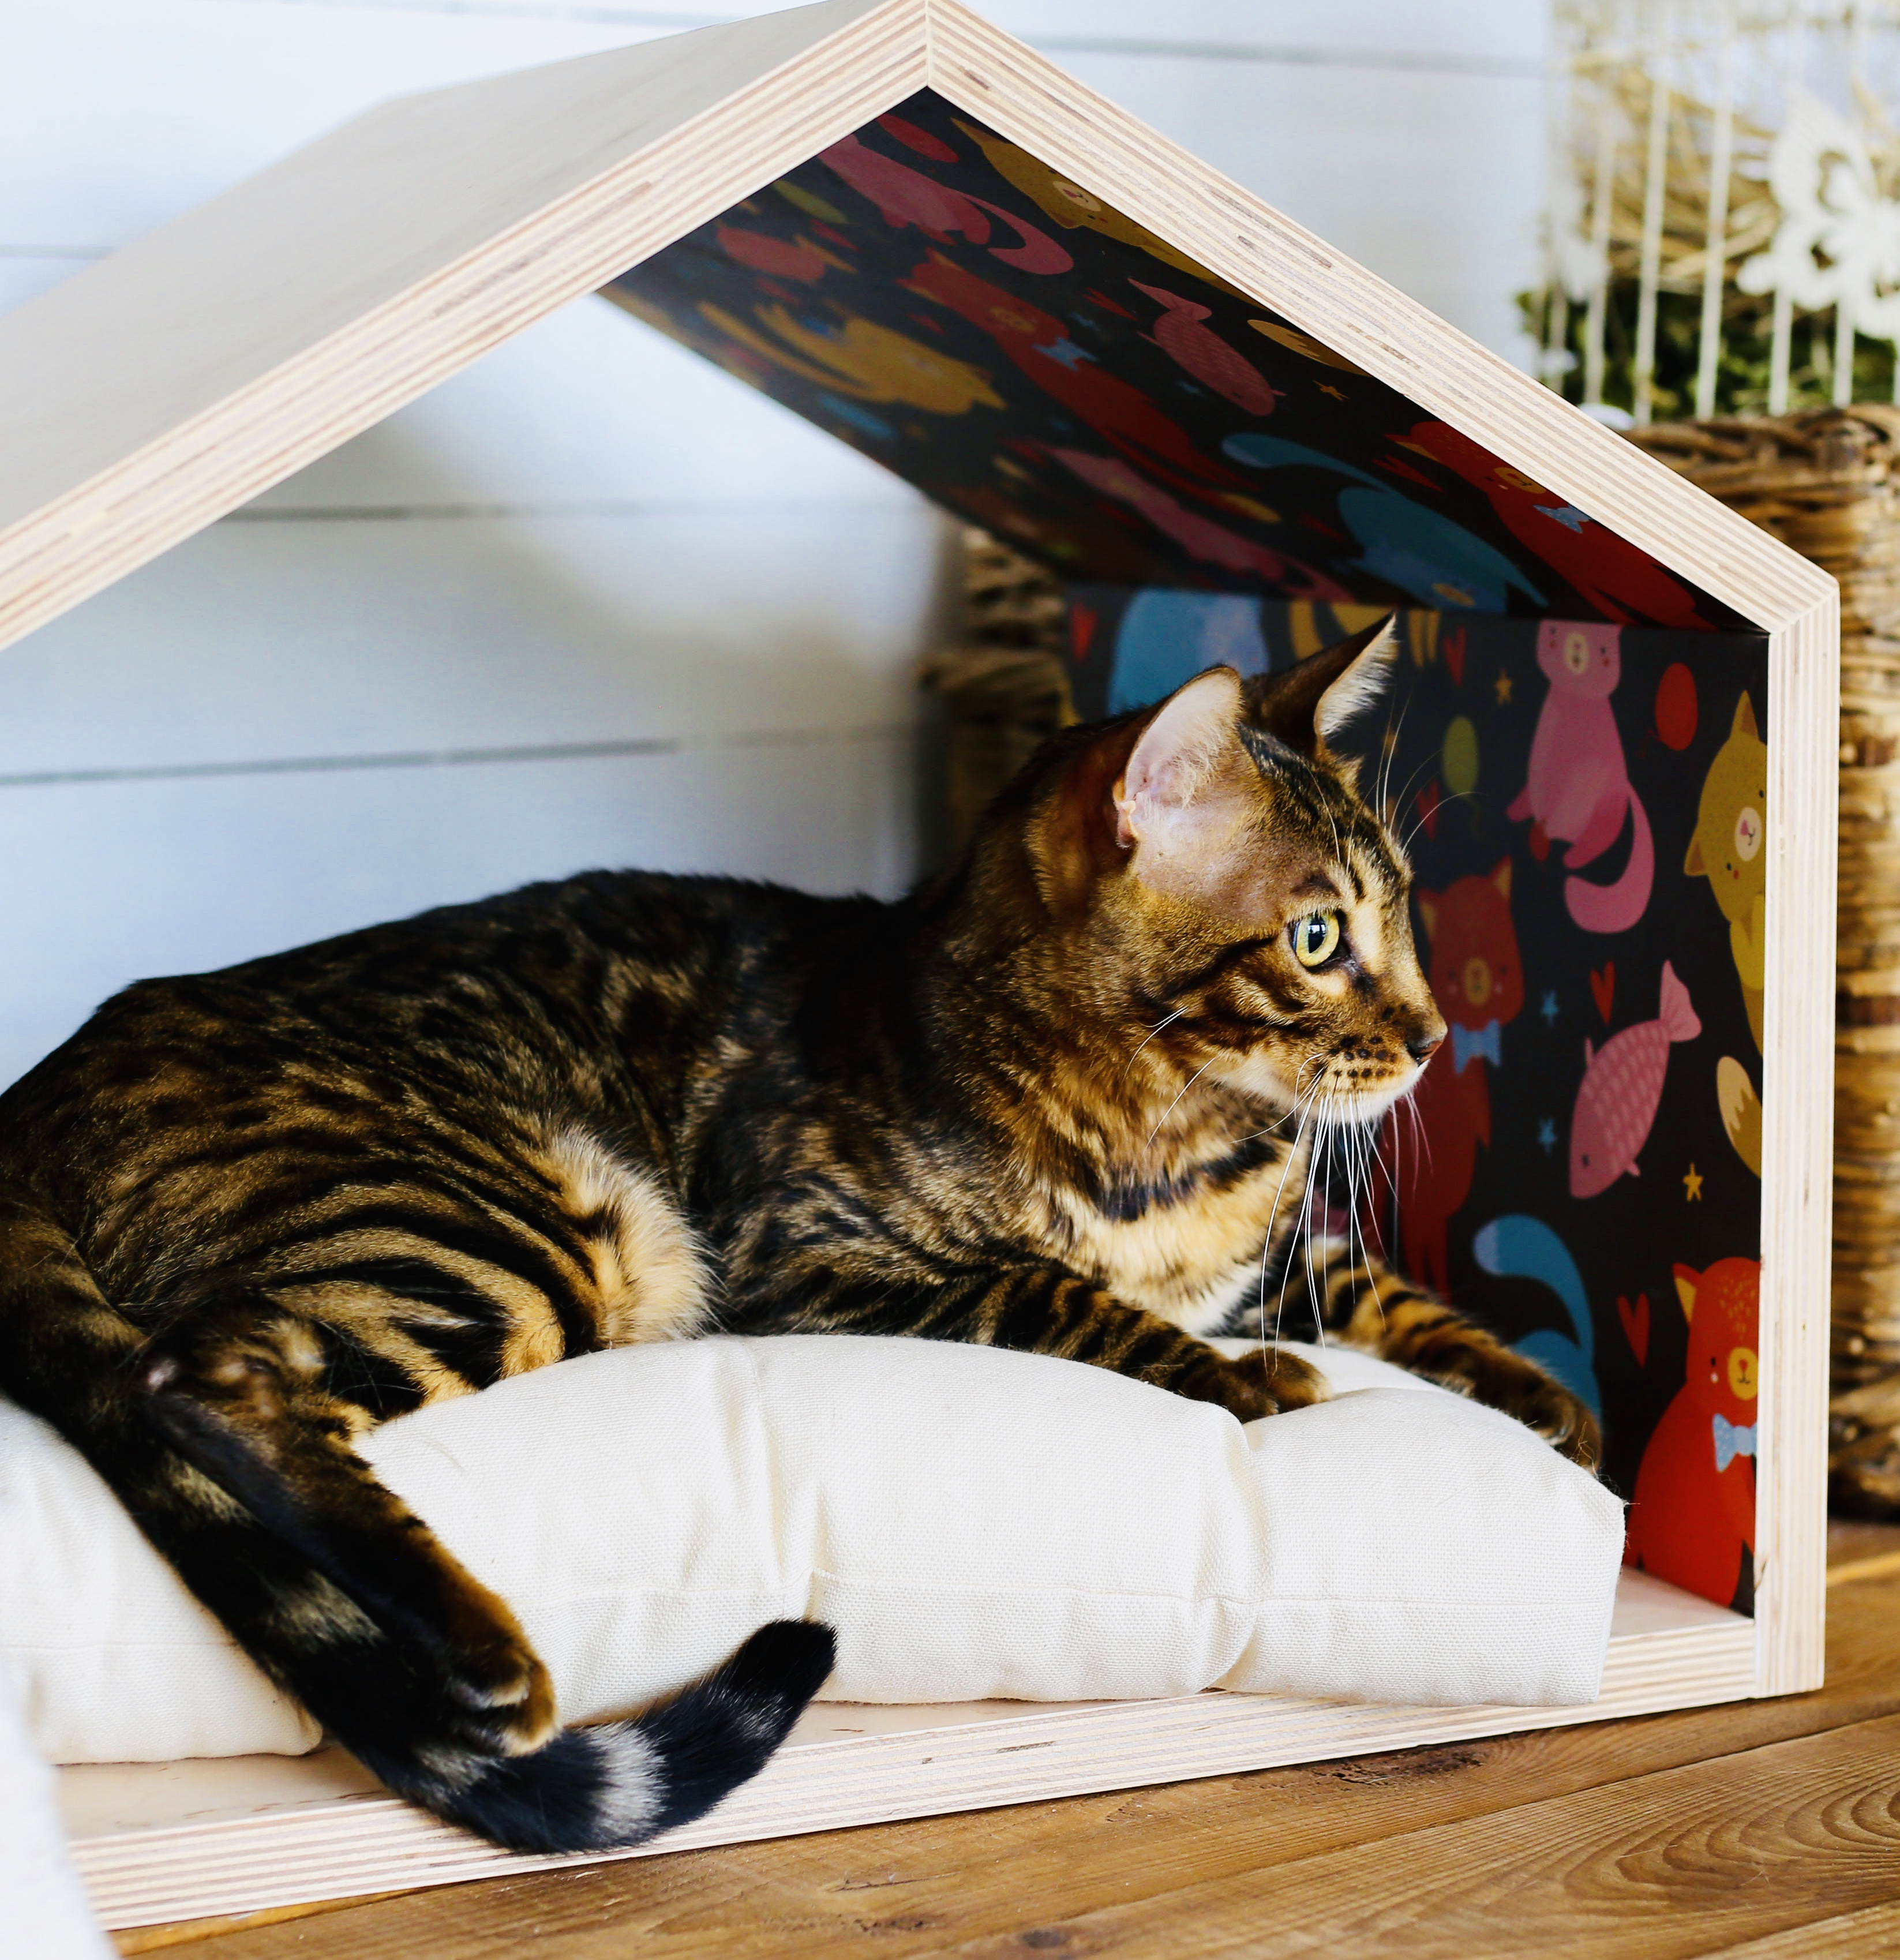 Cat and dog house Woodstock Design